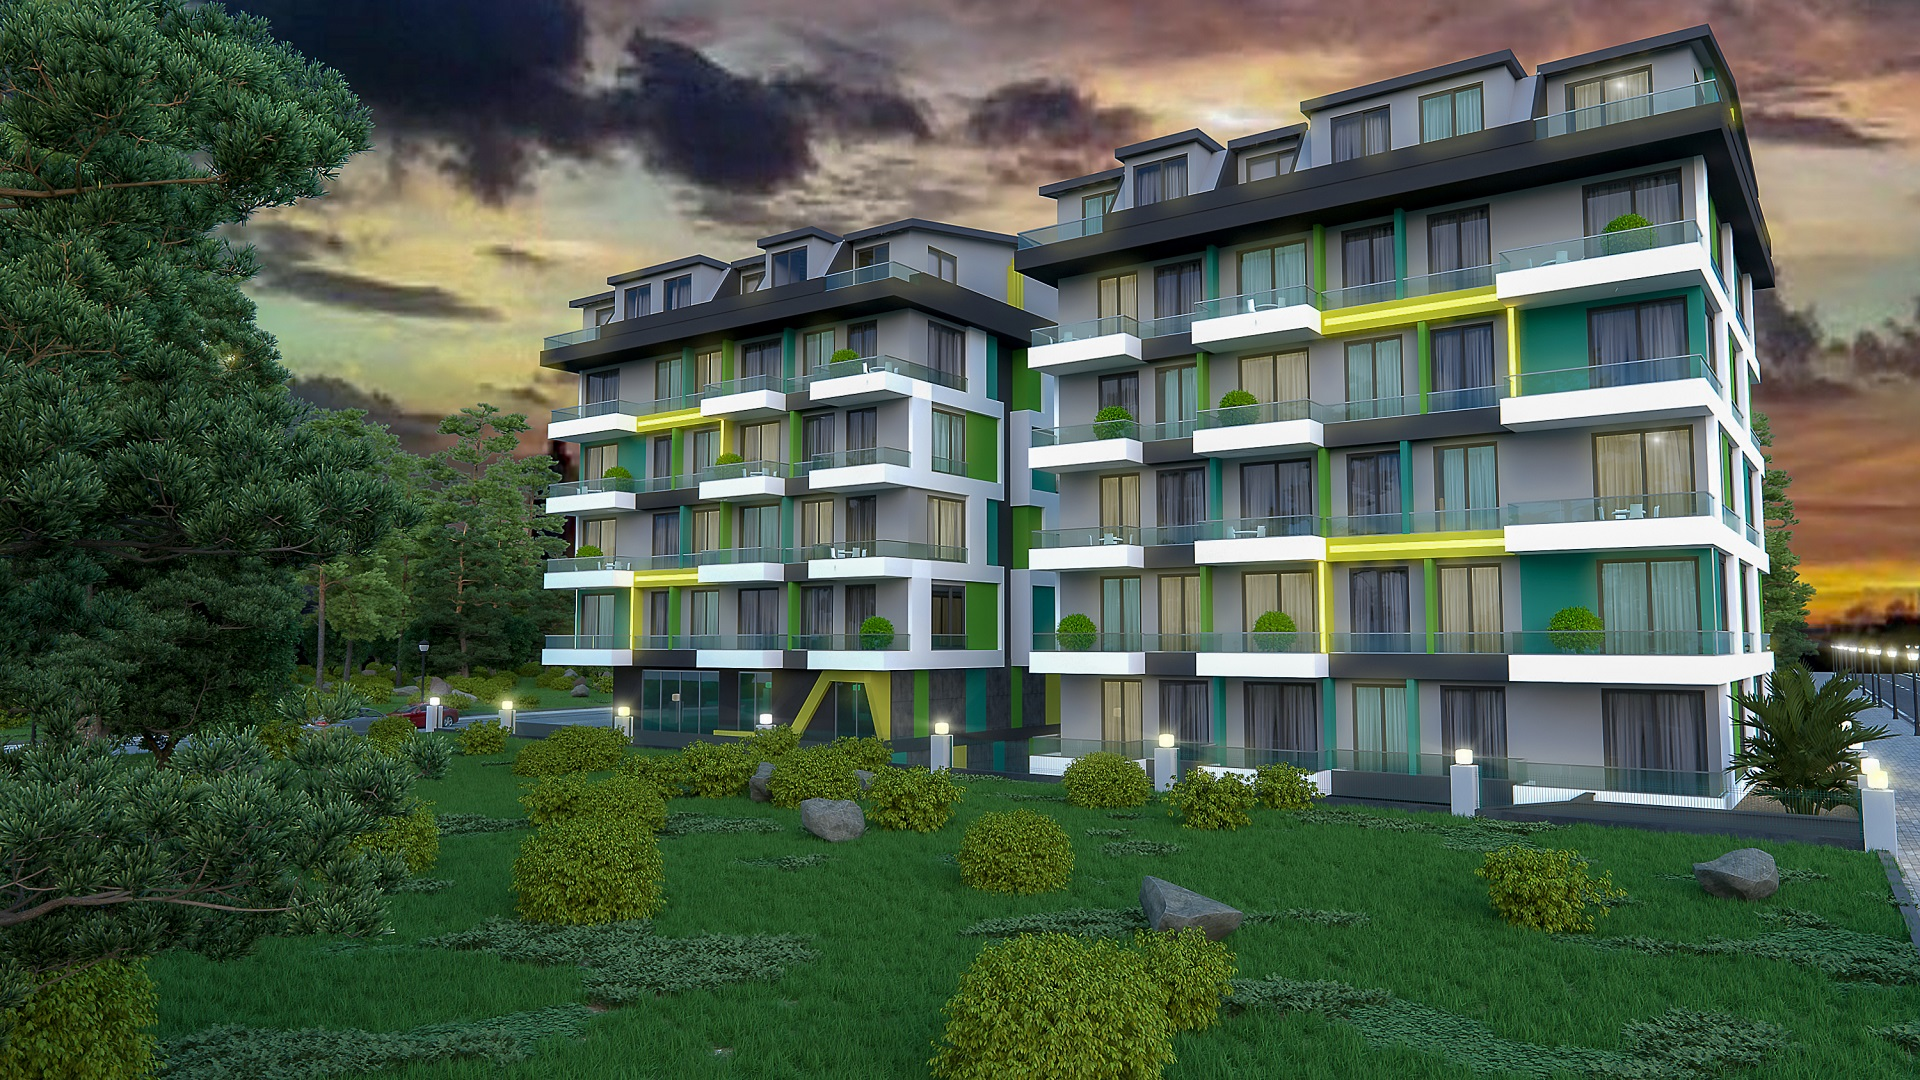 COLOURFUL APARTMENTS FOR SALE IN MAHMUTLAR, ALANYA